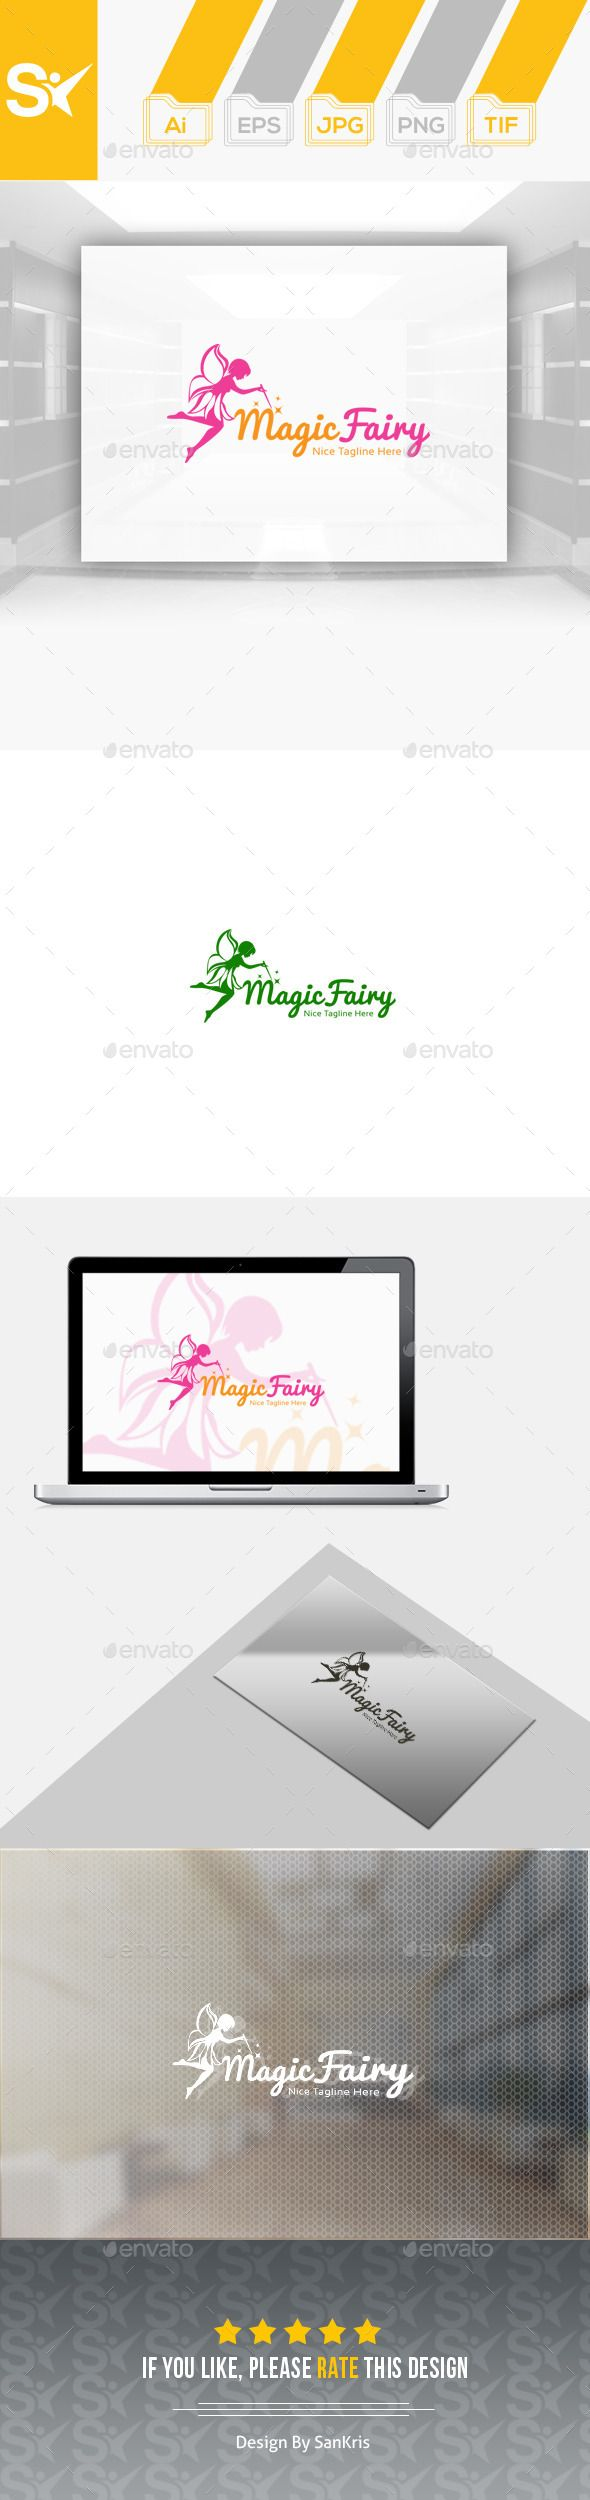 Magic Fairy Logo Design Template Vector logotype